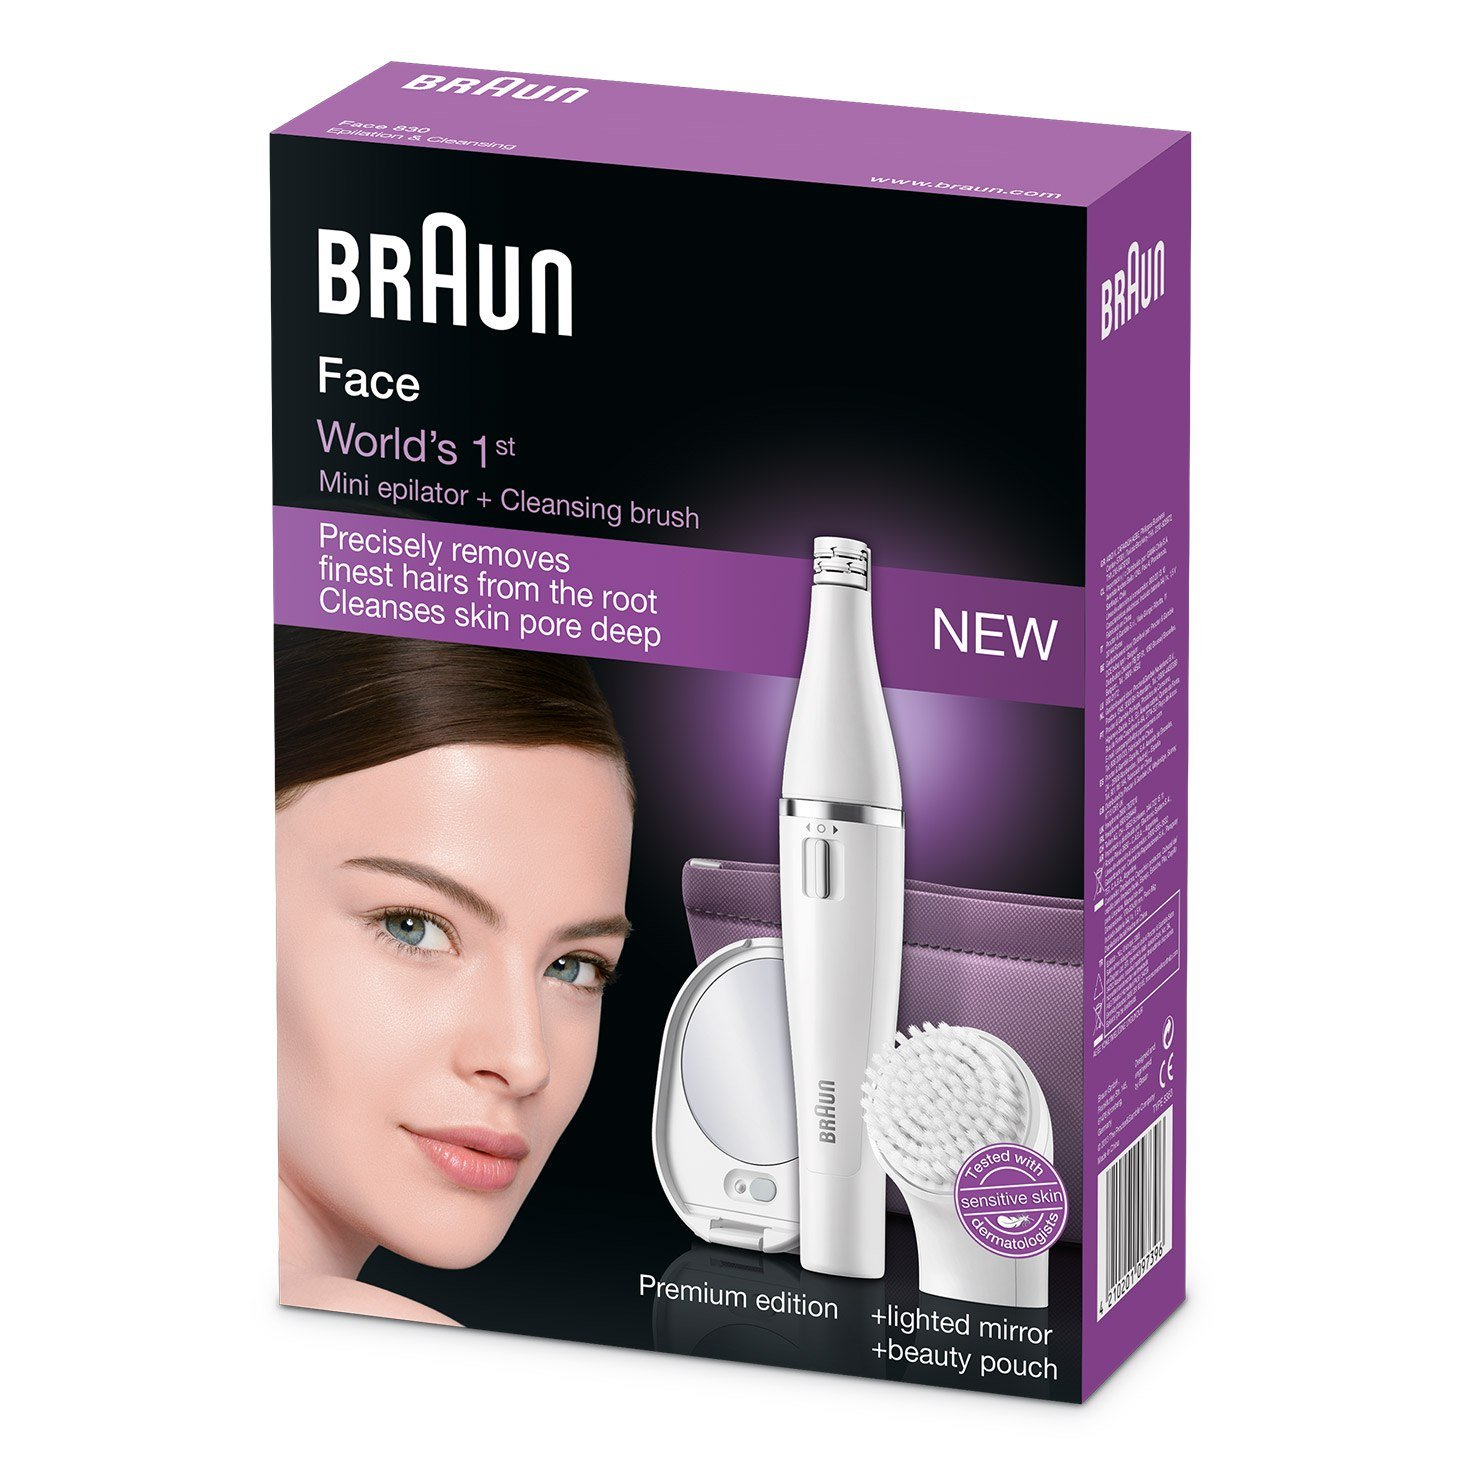 Braun Face 830 Premium Edition - packaging